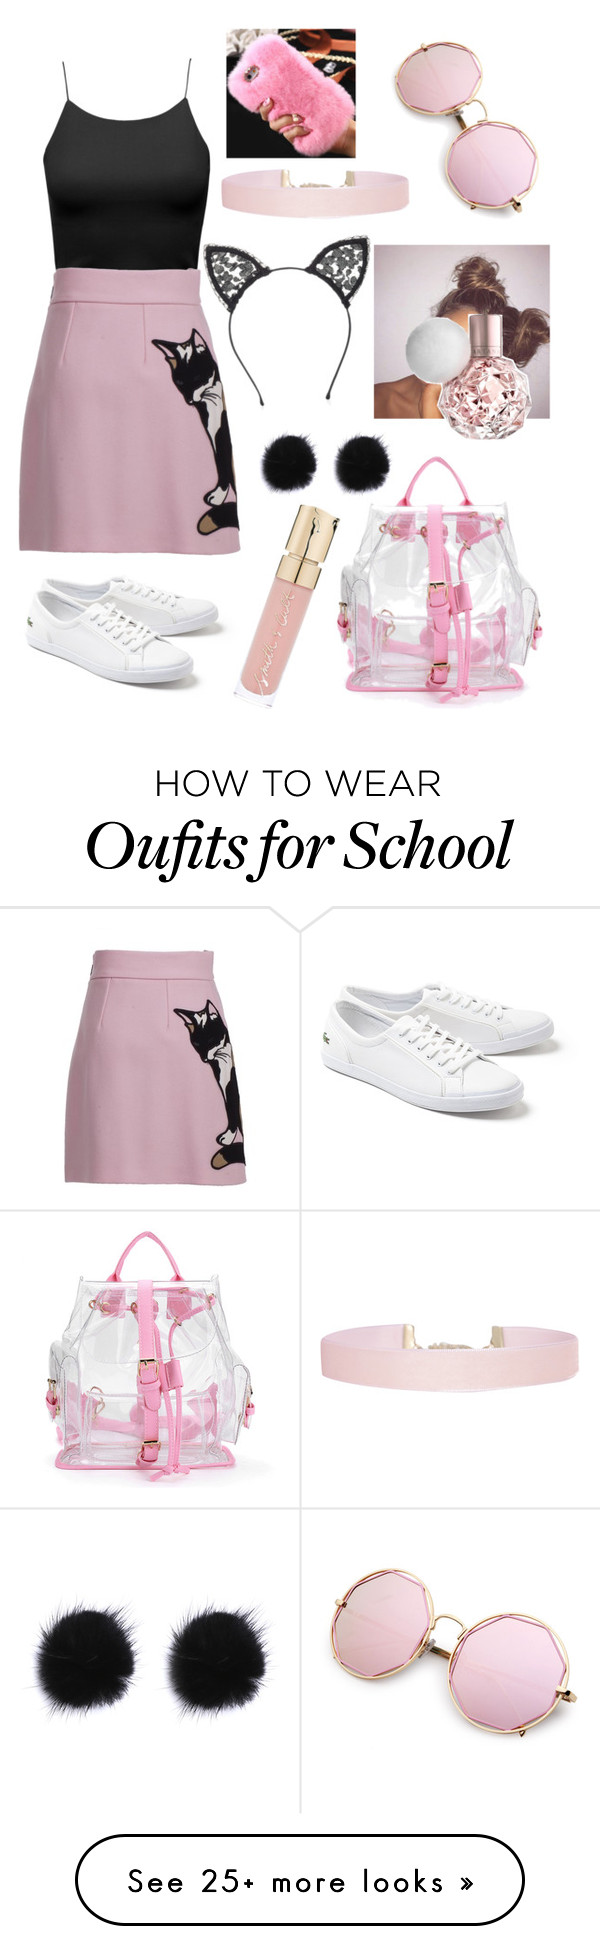 """001"" by anelegoulding on Polyvore featuring MSGM, Lacoste, Humble Chic, Smith & Cult and Fleur du Mal"